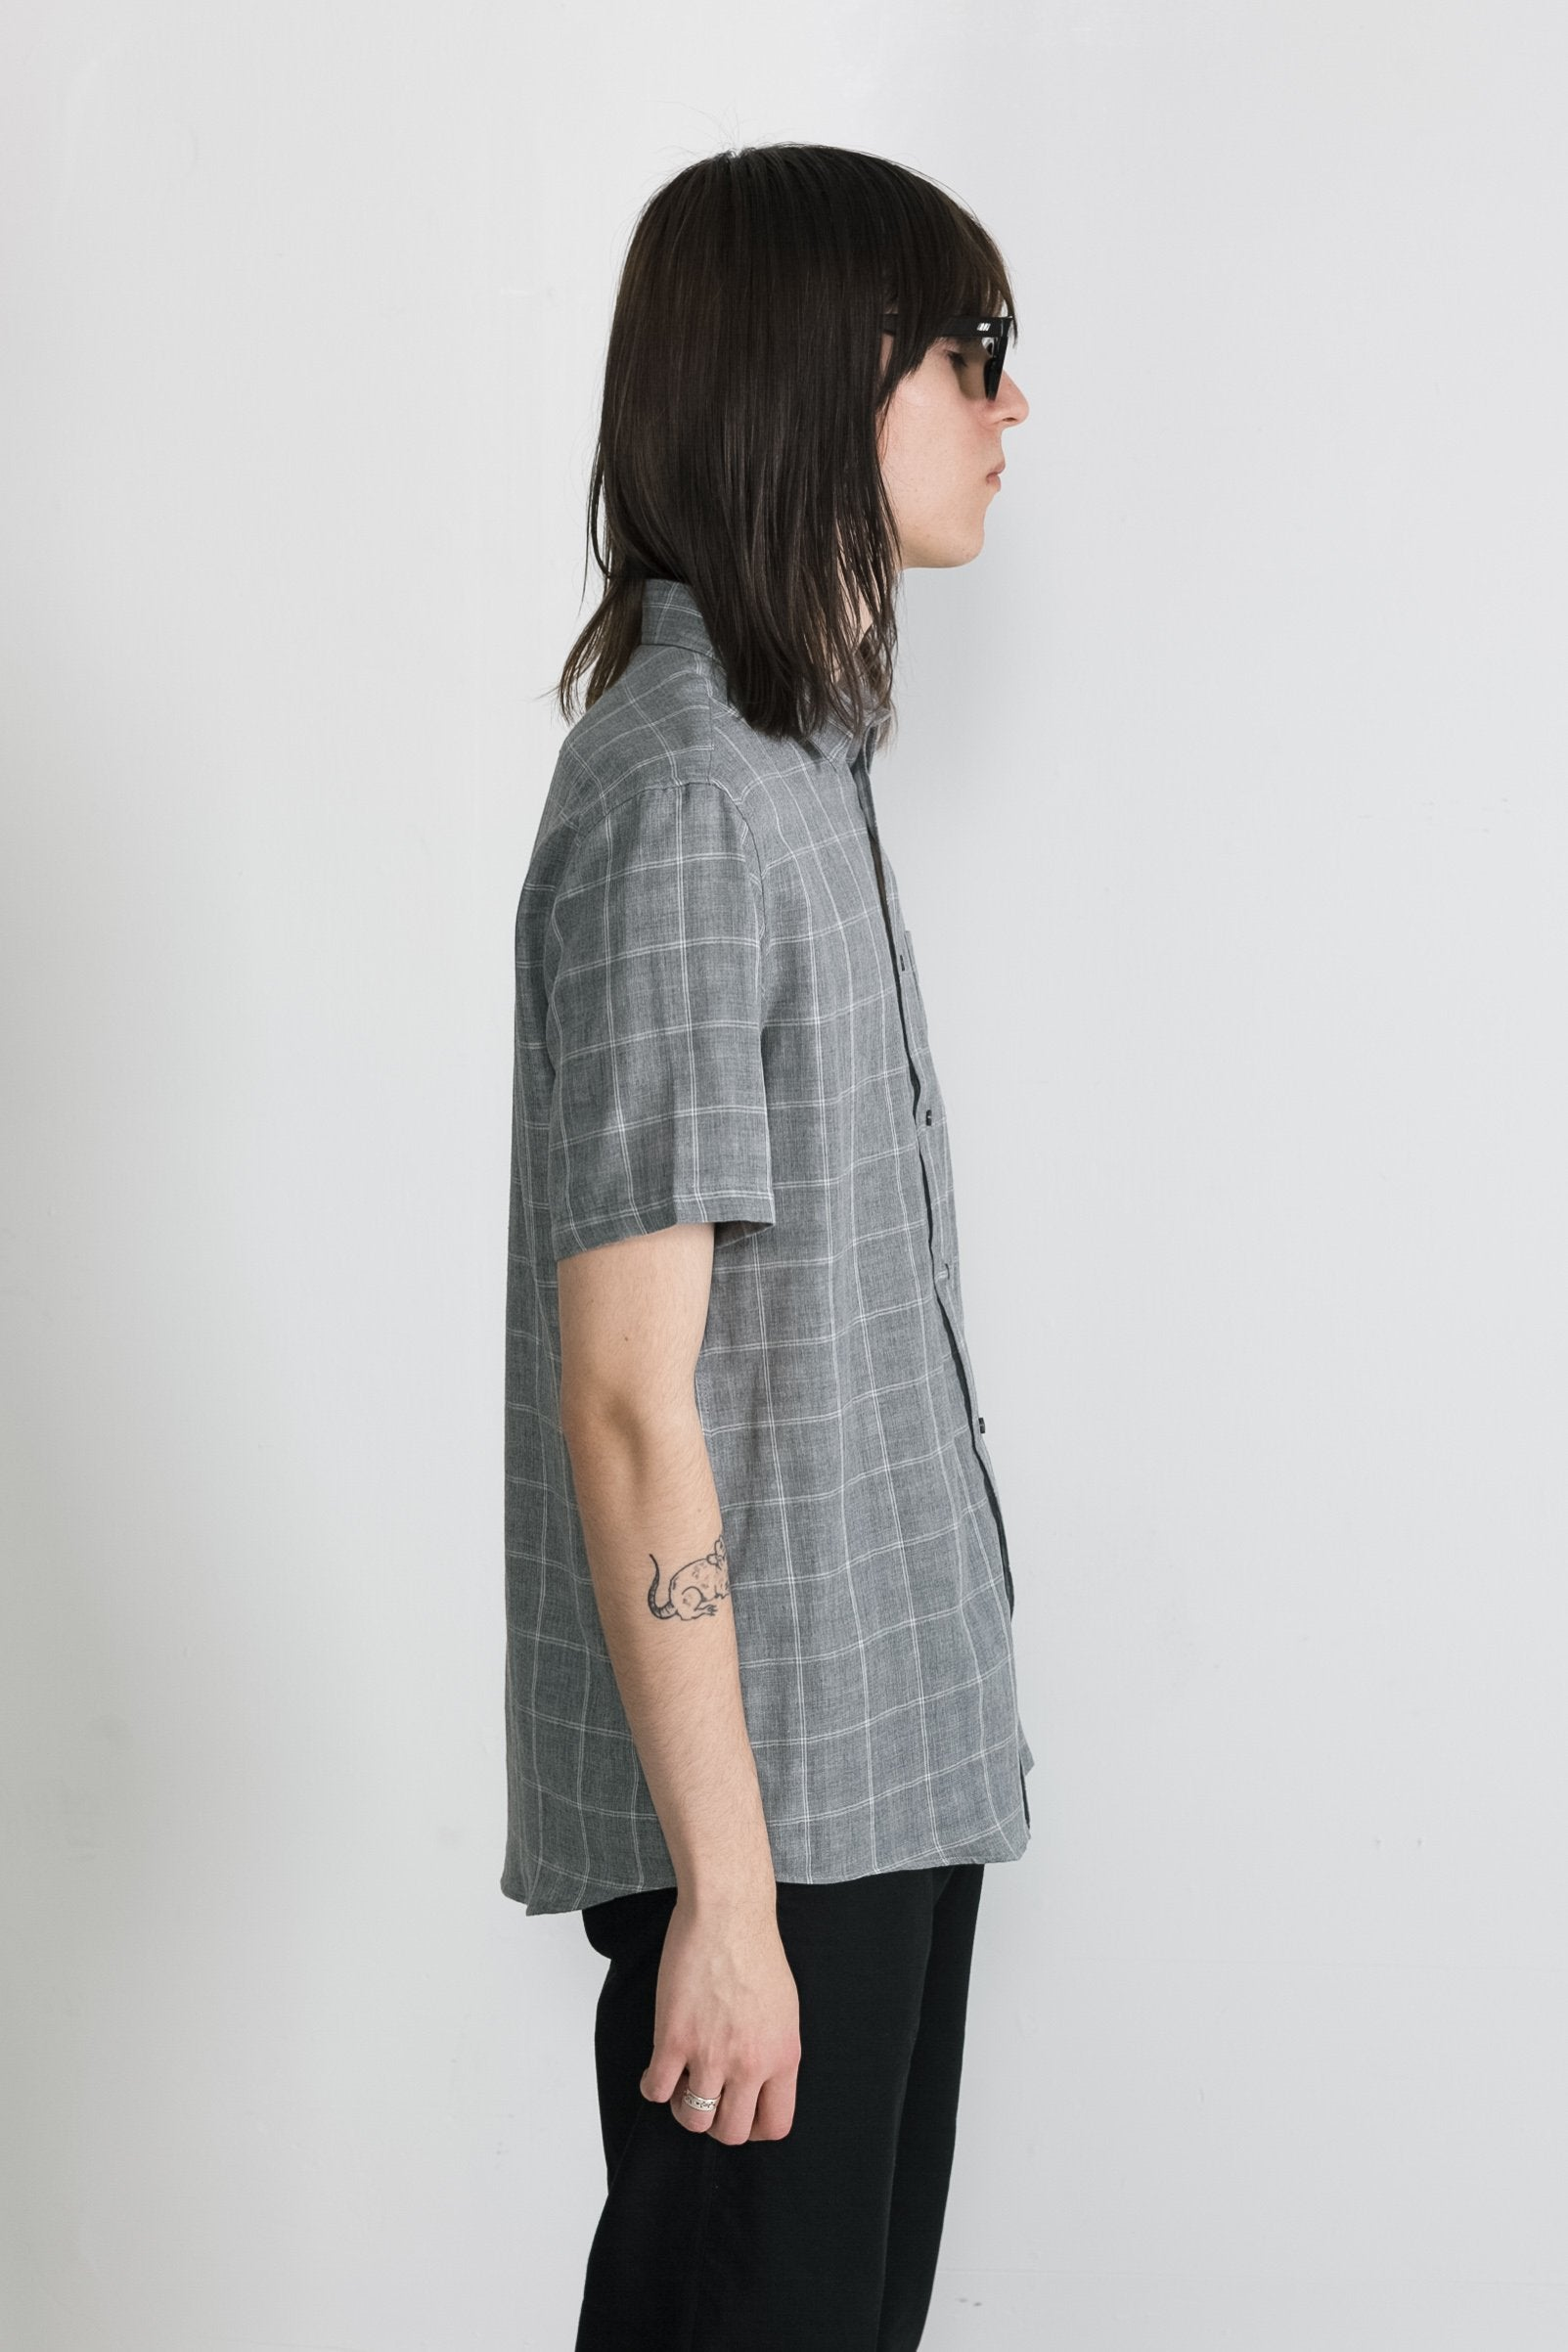 Japanese Double Face Plaid in Grey 007